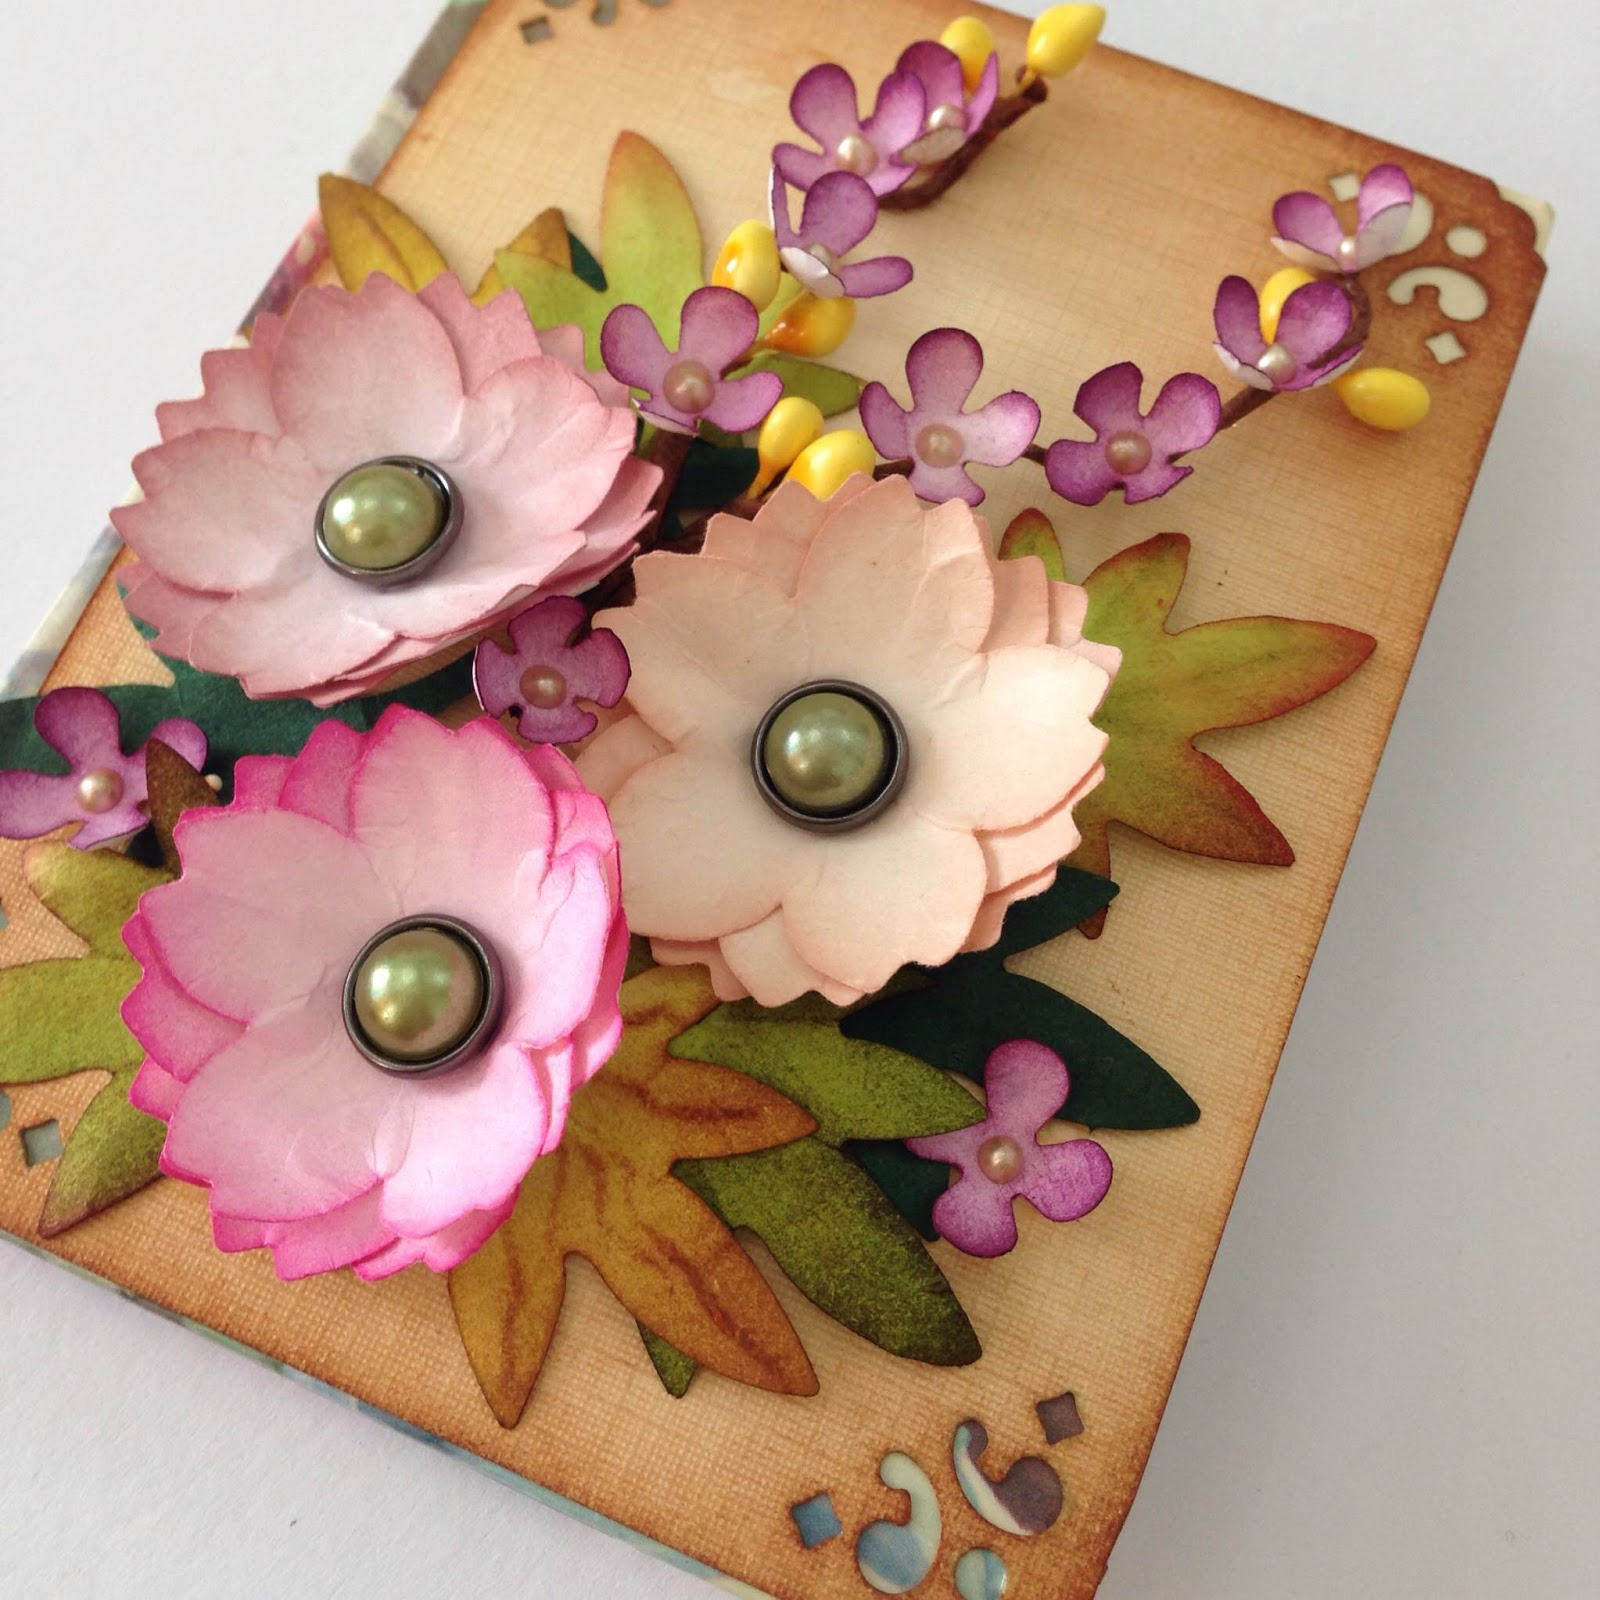 A4 Paper Flower Art Project Ideas And Craft Ideas